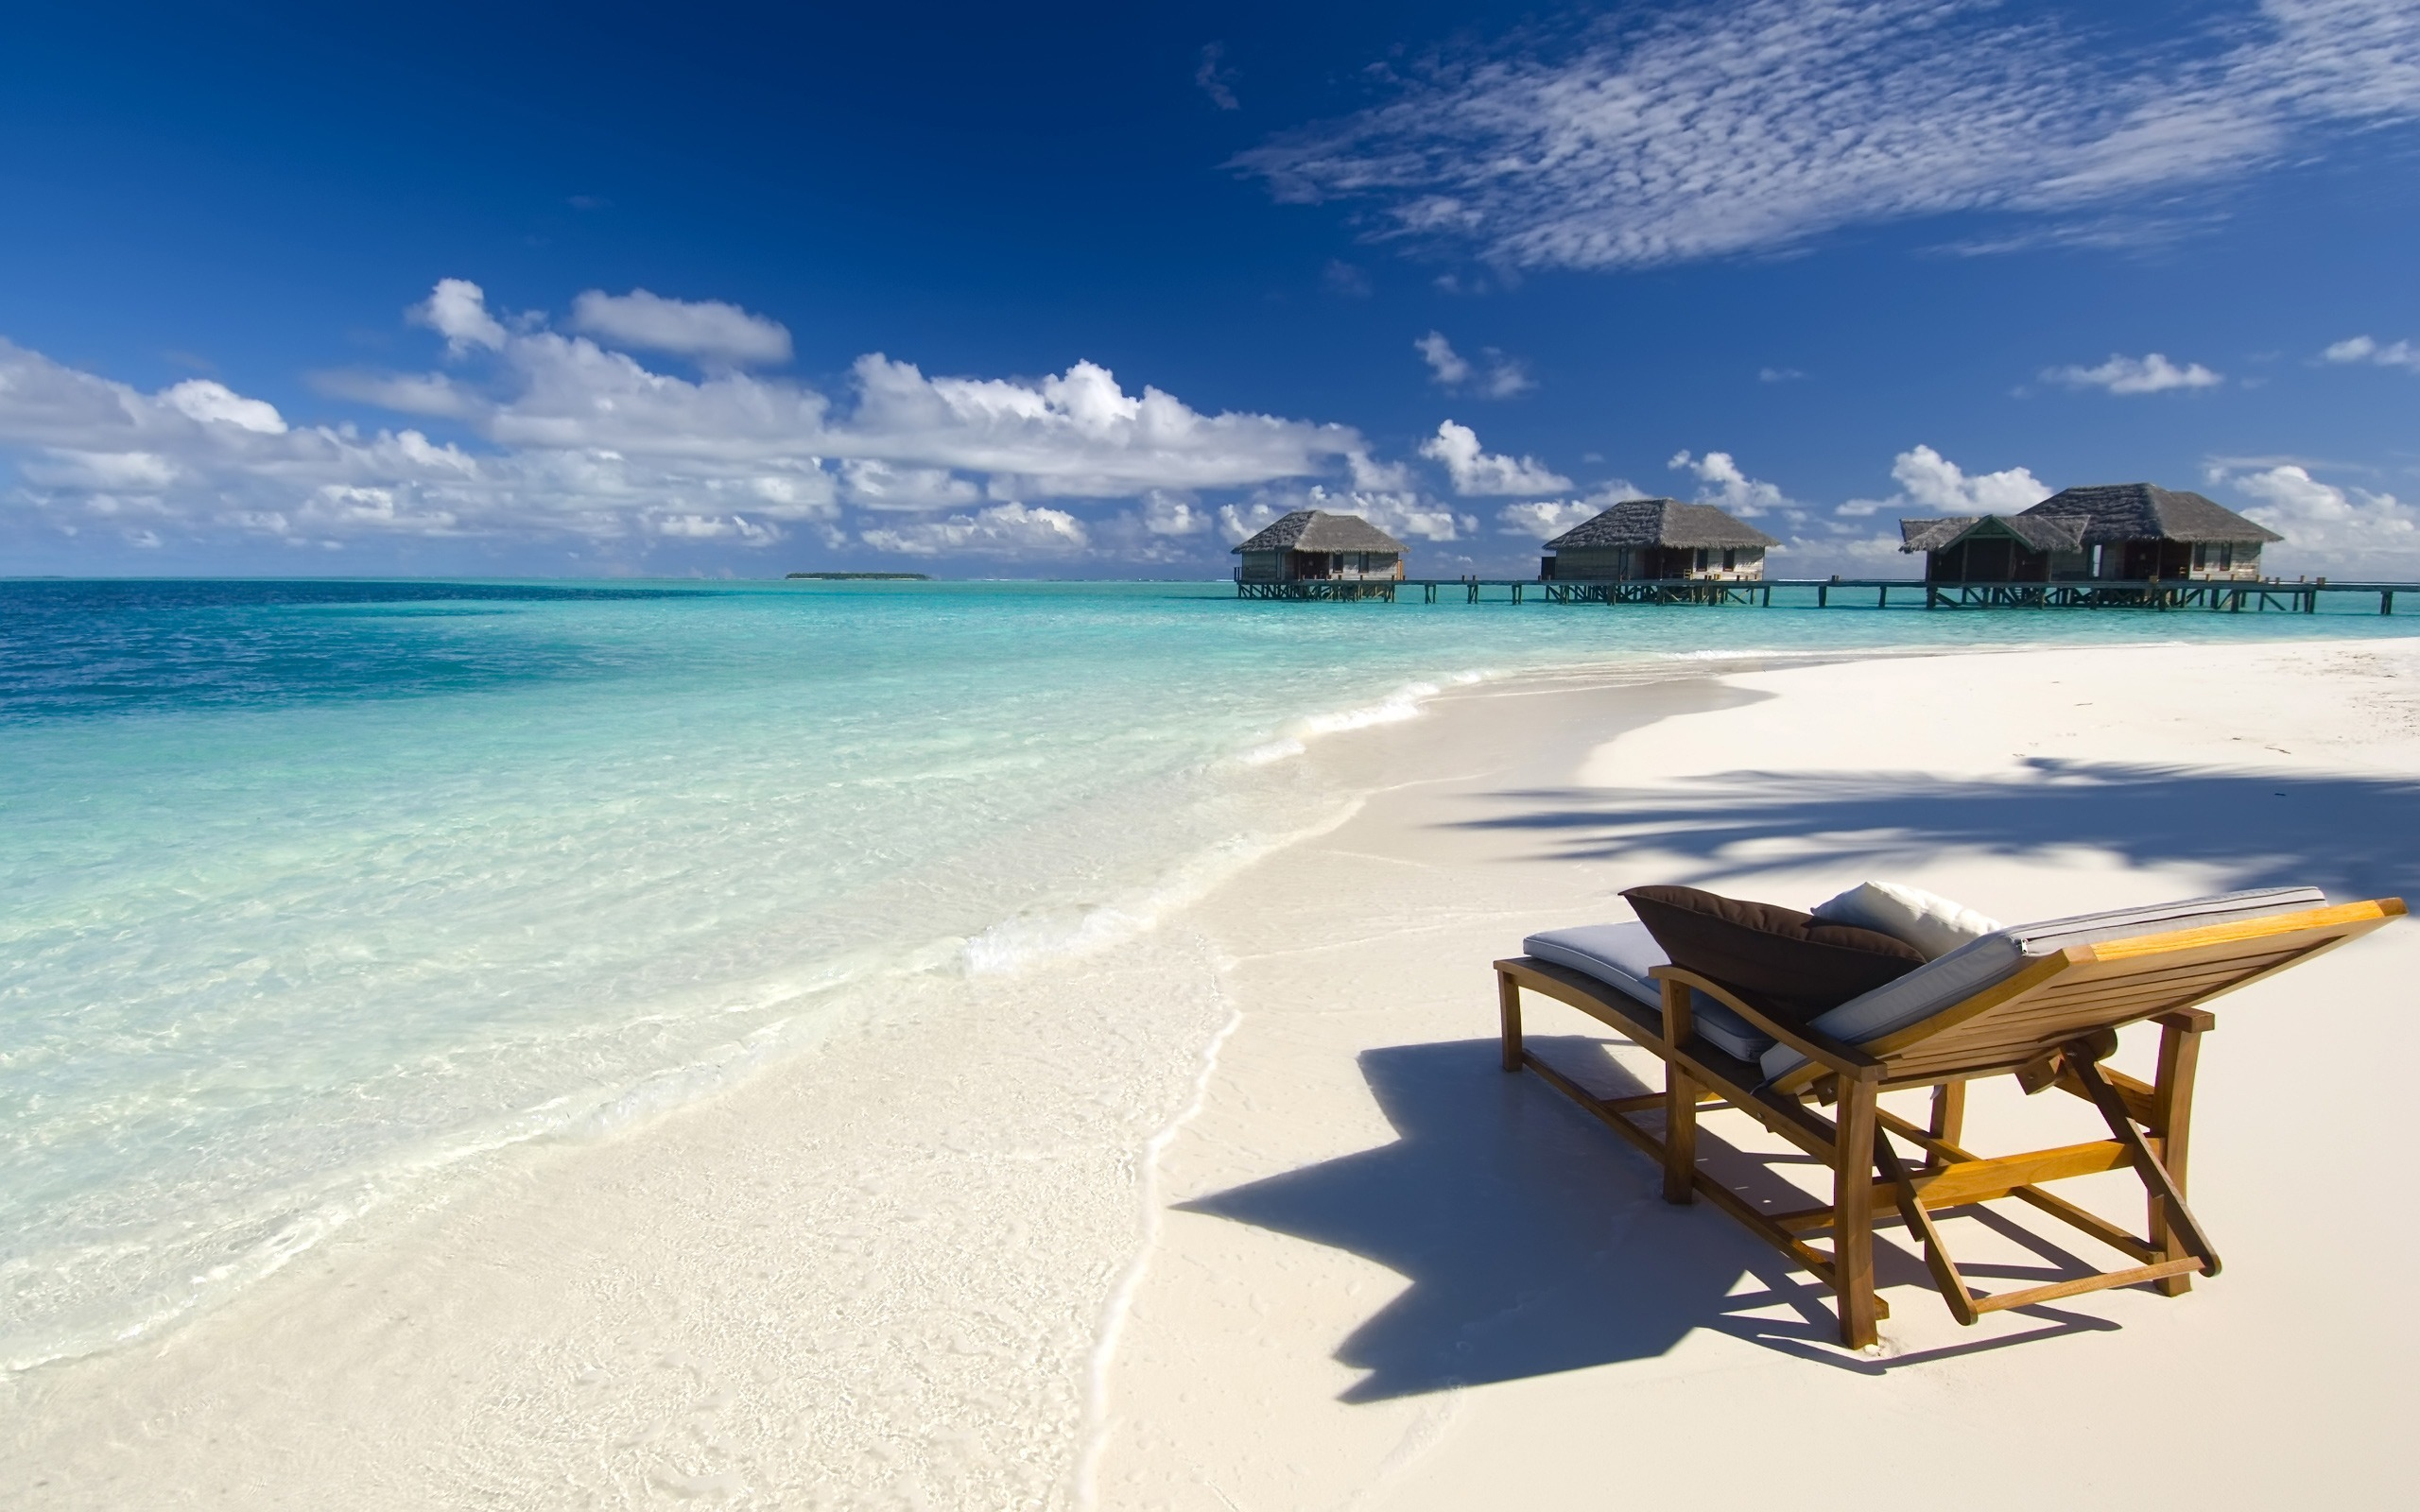 Beach Lounge Chair 37 Wallpapers – Free Wallpapers